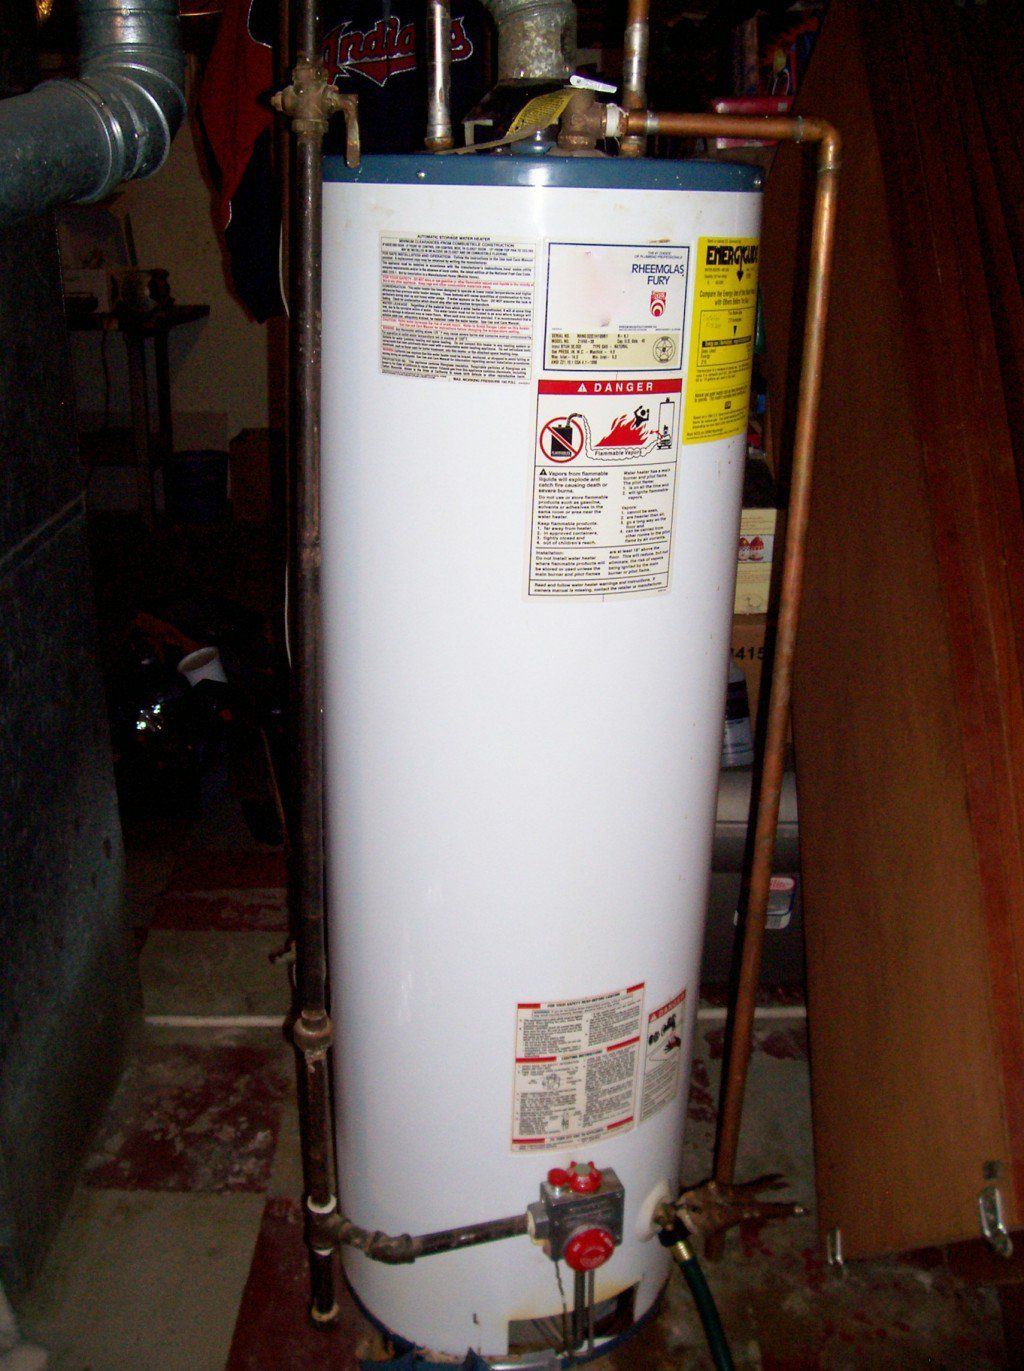 Peachy How To Drain A Water Heater Fast With Pictures Mobile Beutiful Home Inspiration Truamahrainfo